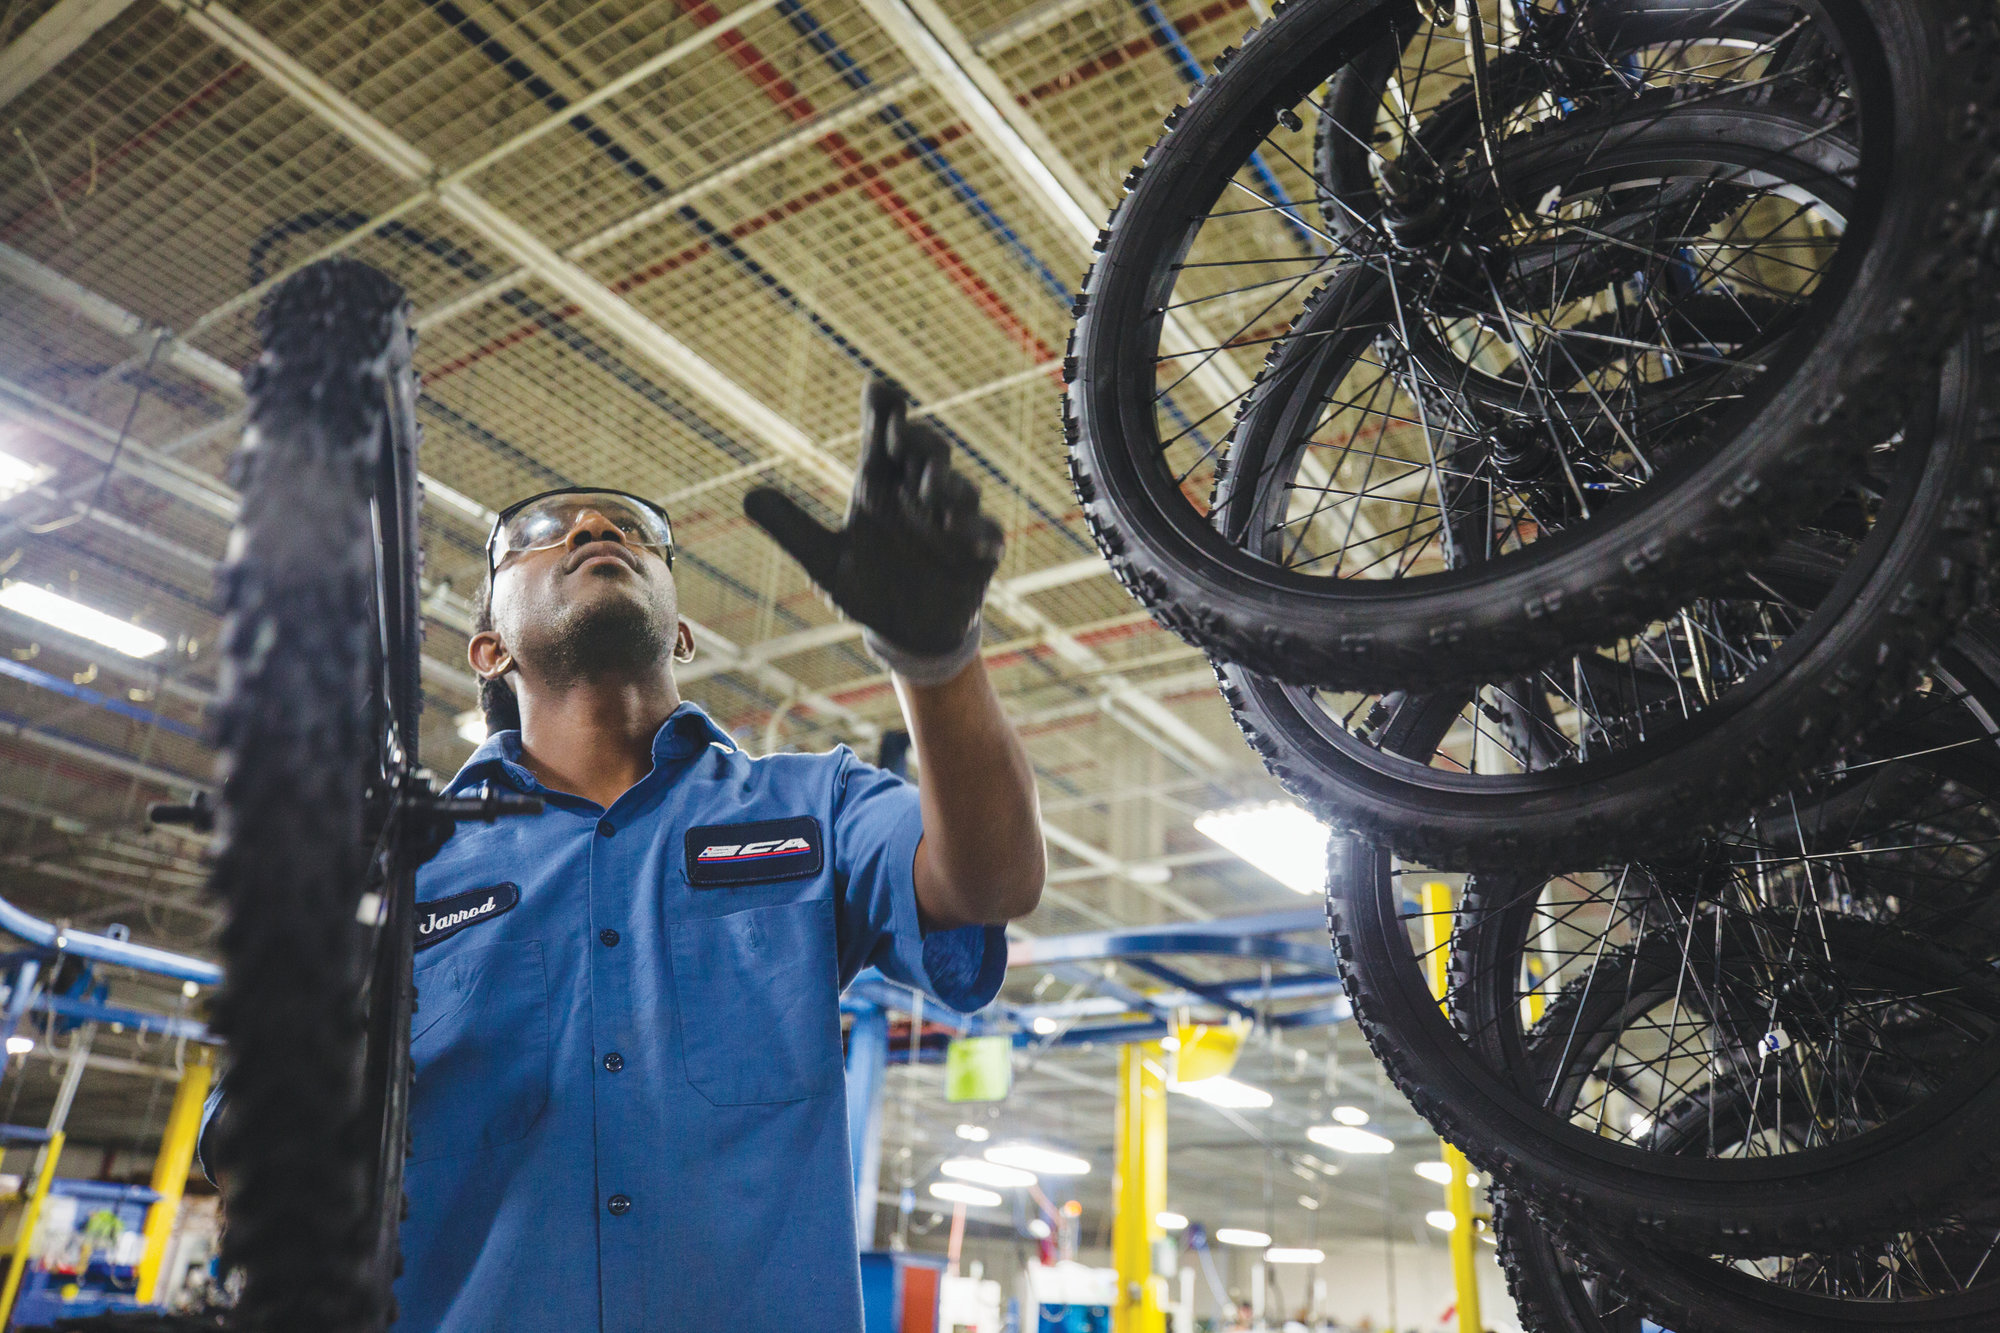 An employee of Bicycle Corporation of America, a division of Kent International, in Manning manufacture bicycles that are sold in Walmarts across the country. BCA is the only company that supplies U.S.-produced bicycles to Walmart's 4,000 stores.